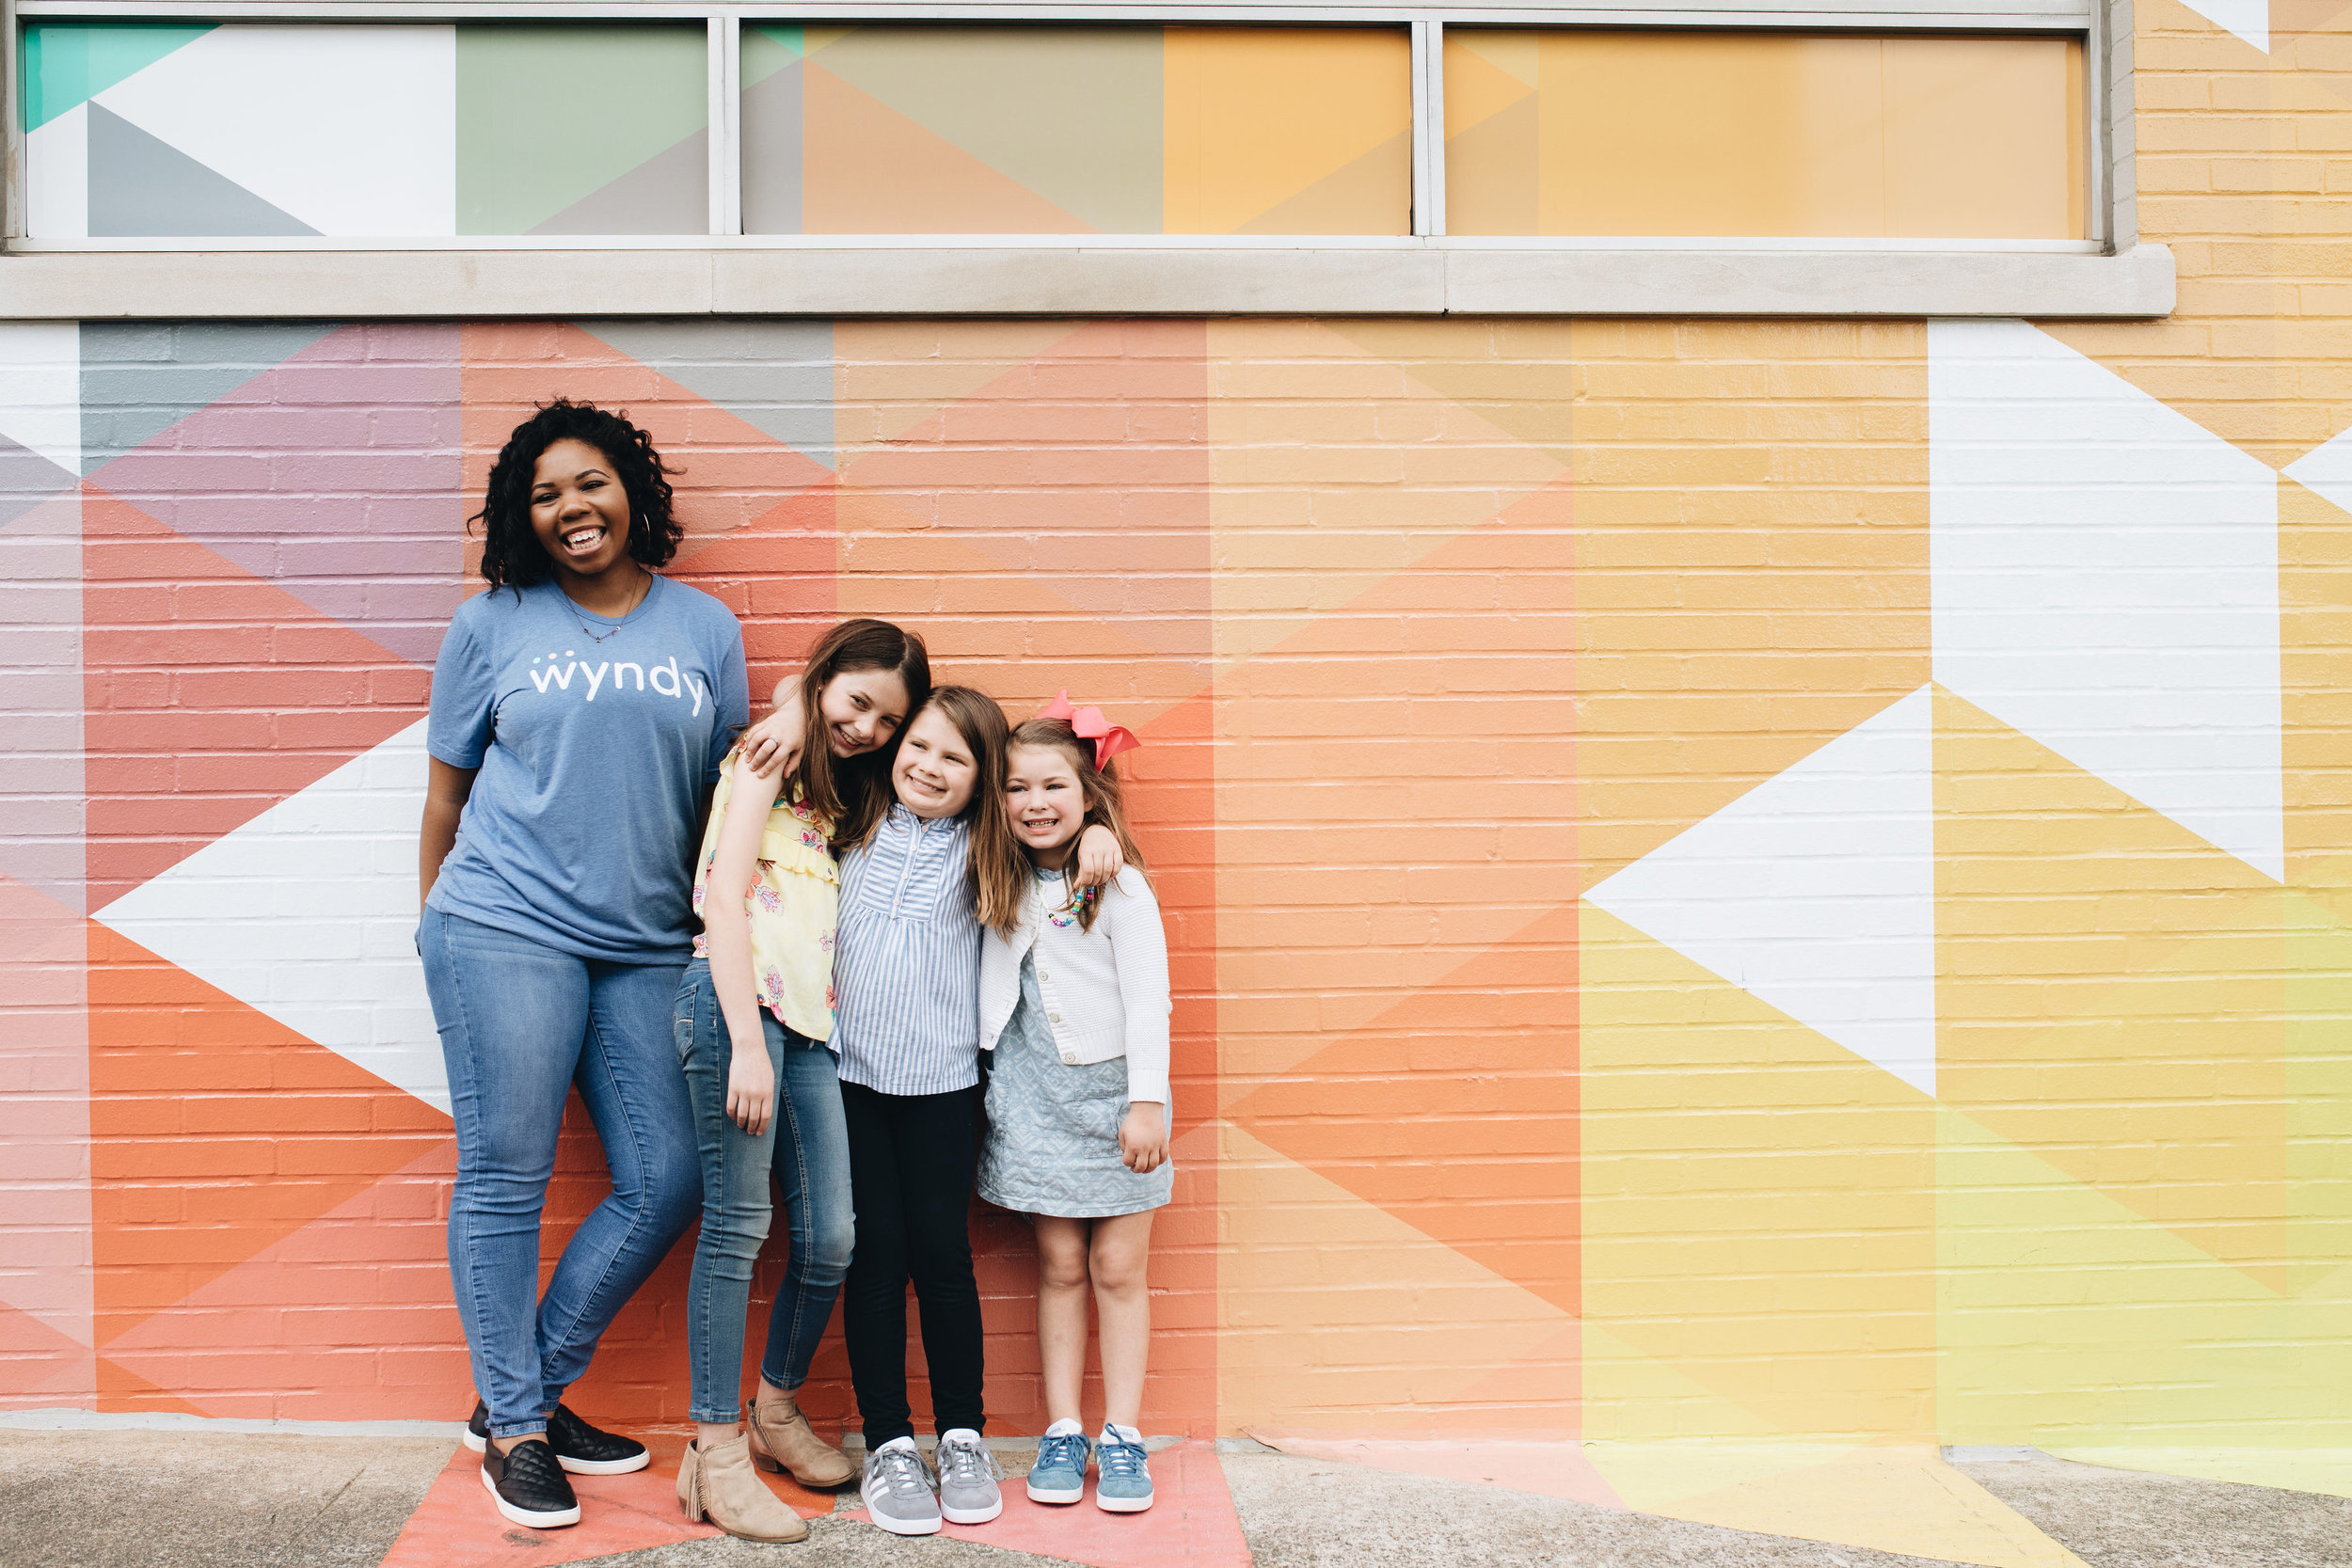 Get a Free Hour of babysitting in Decatur, Georgia in July - More than 10,000 families in Atlanta, Nashville, Birmingham, and Memphis trust Wyndy.